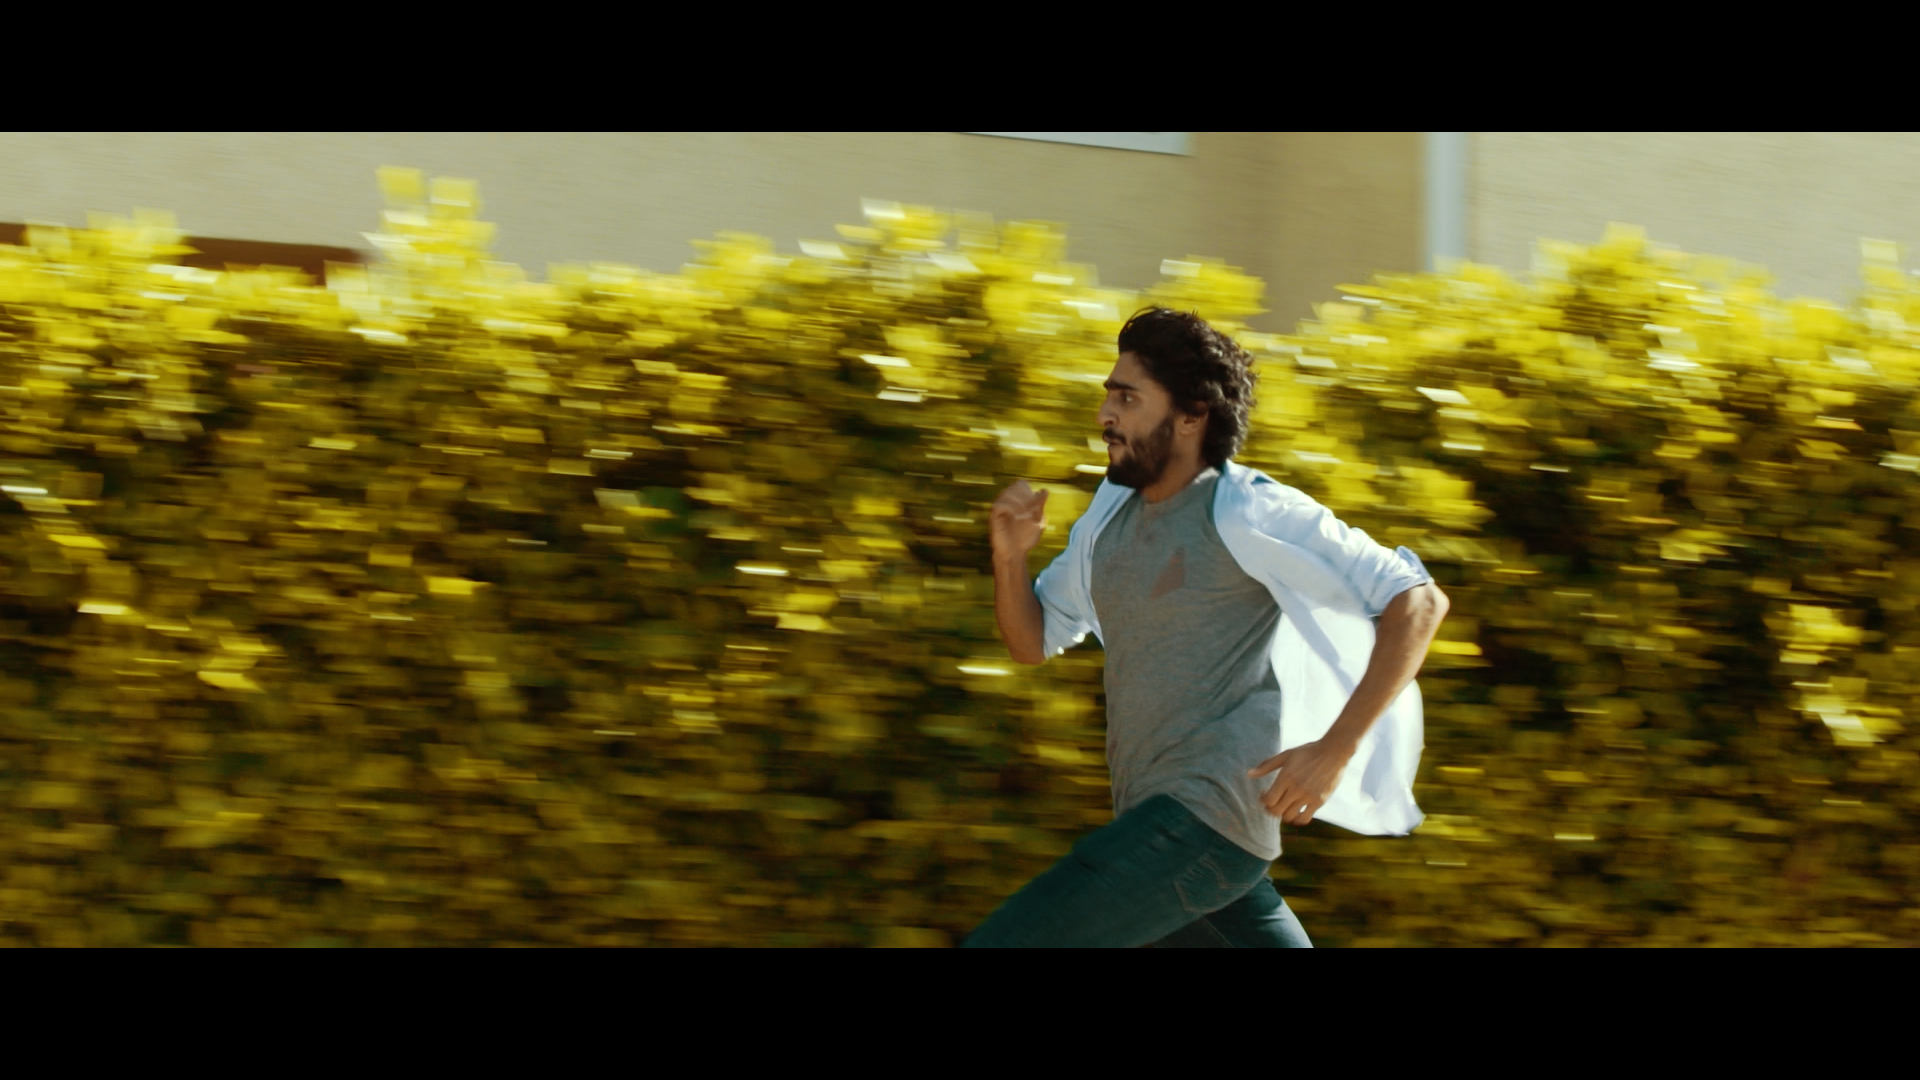 Anoop Running 2.png